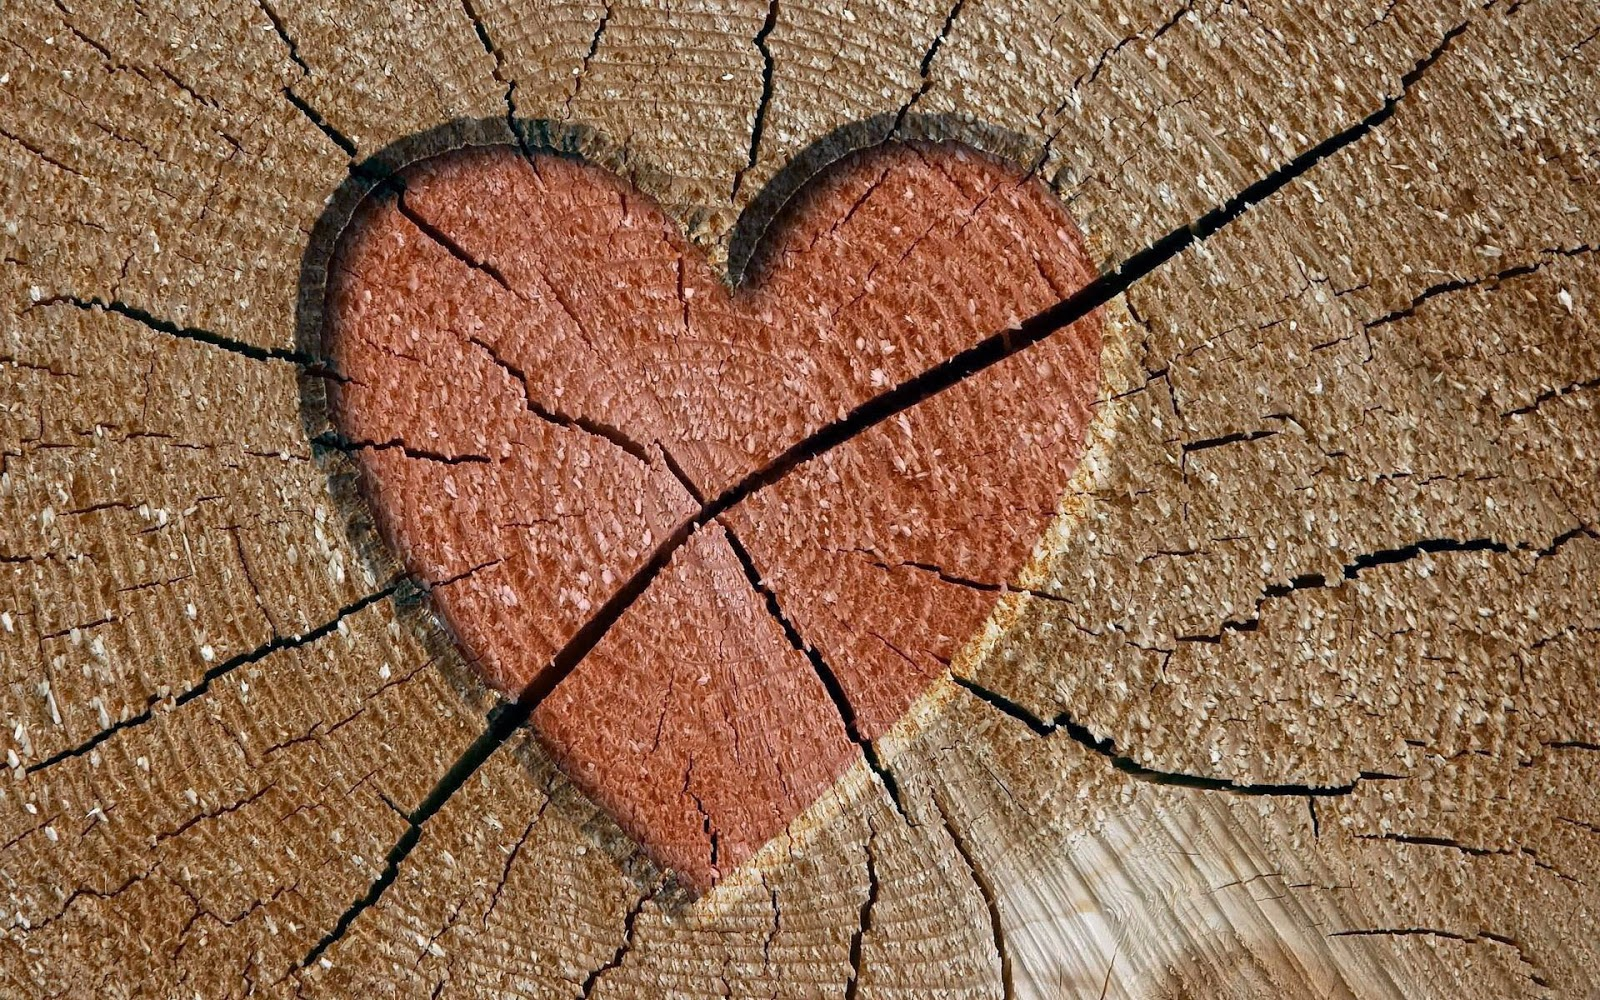 Broken Heart HD Wallpapers And Images In Bad Condition